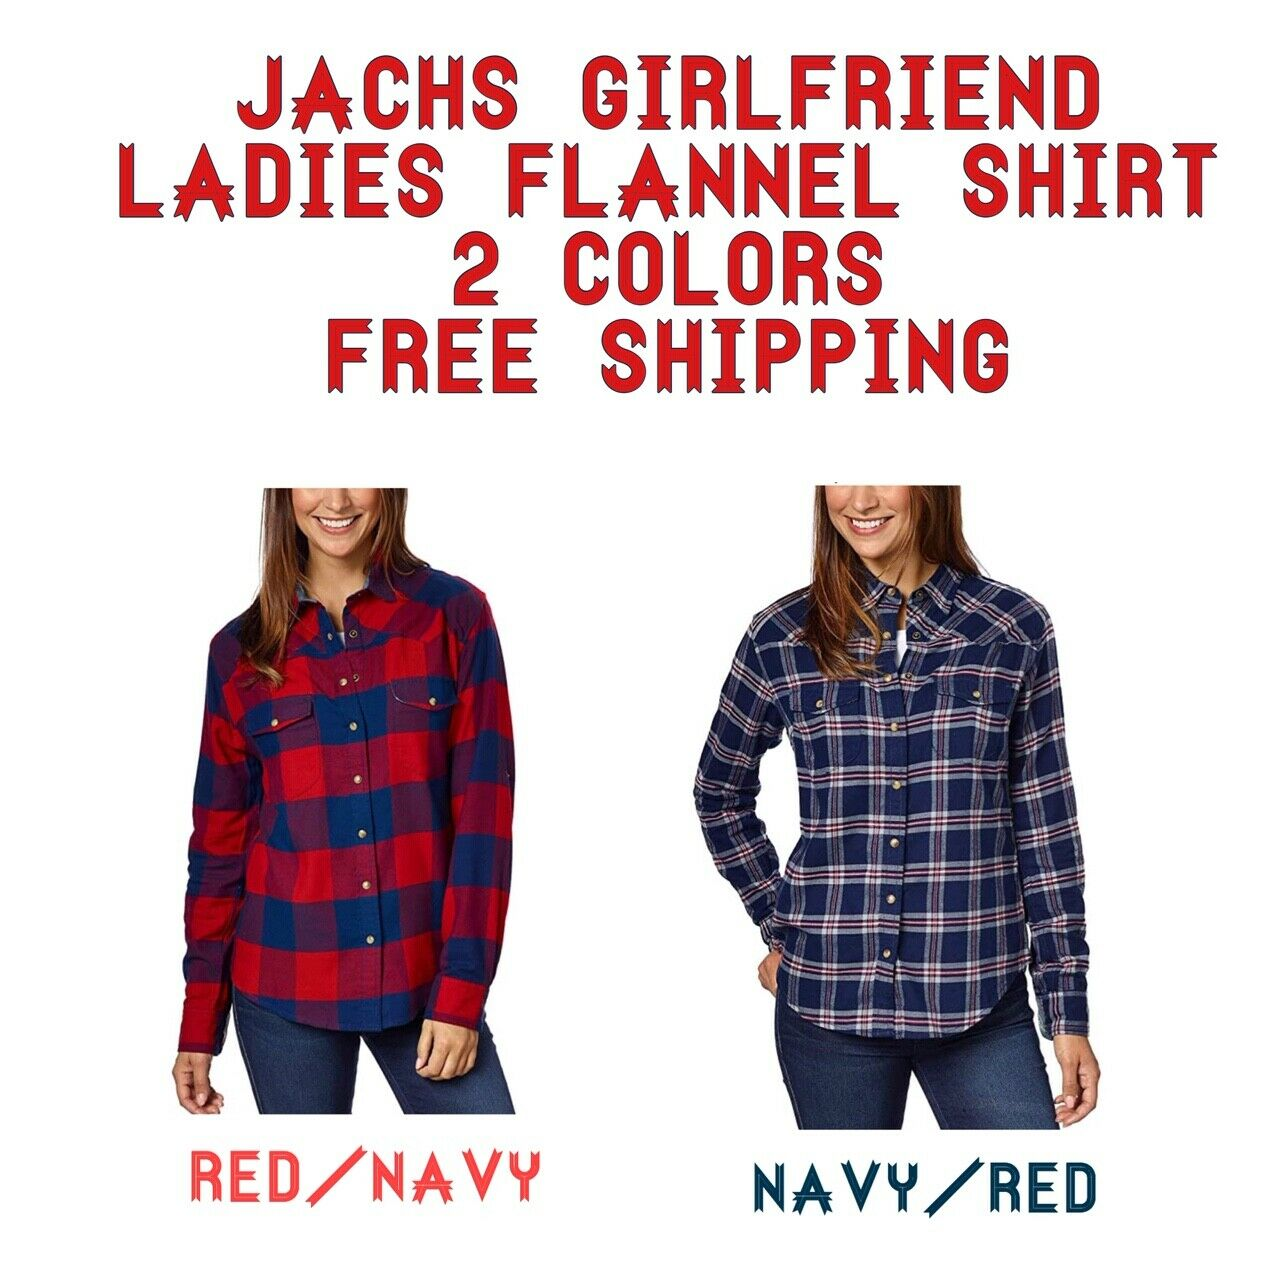 Jachs Girlfriend Flannel Shirt w/ 2 Front Pockets and Roll T